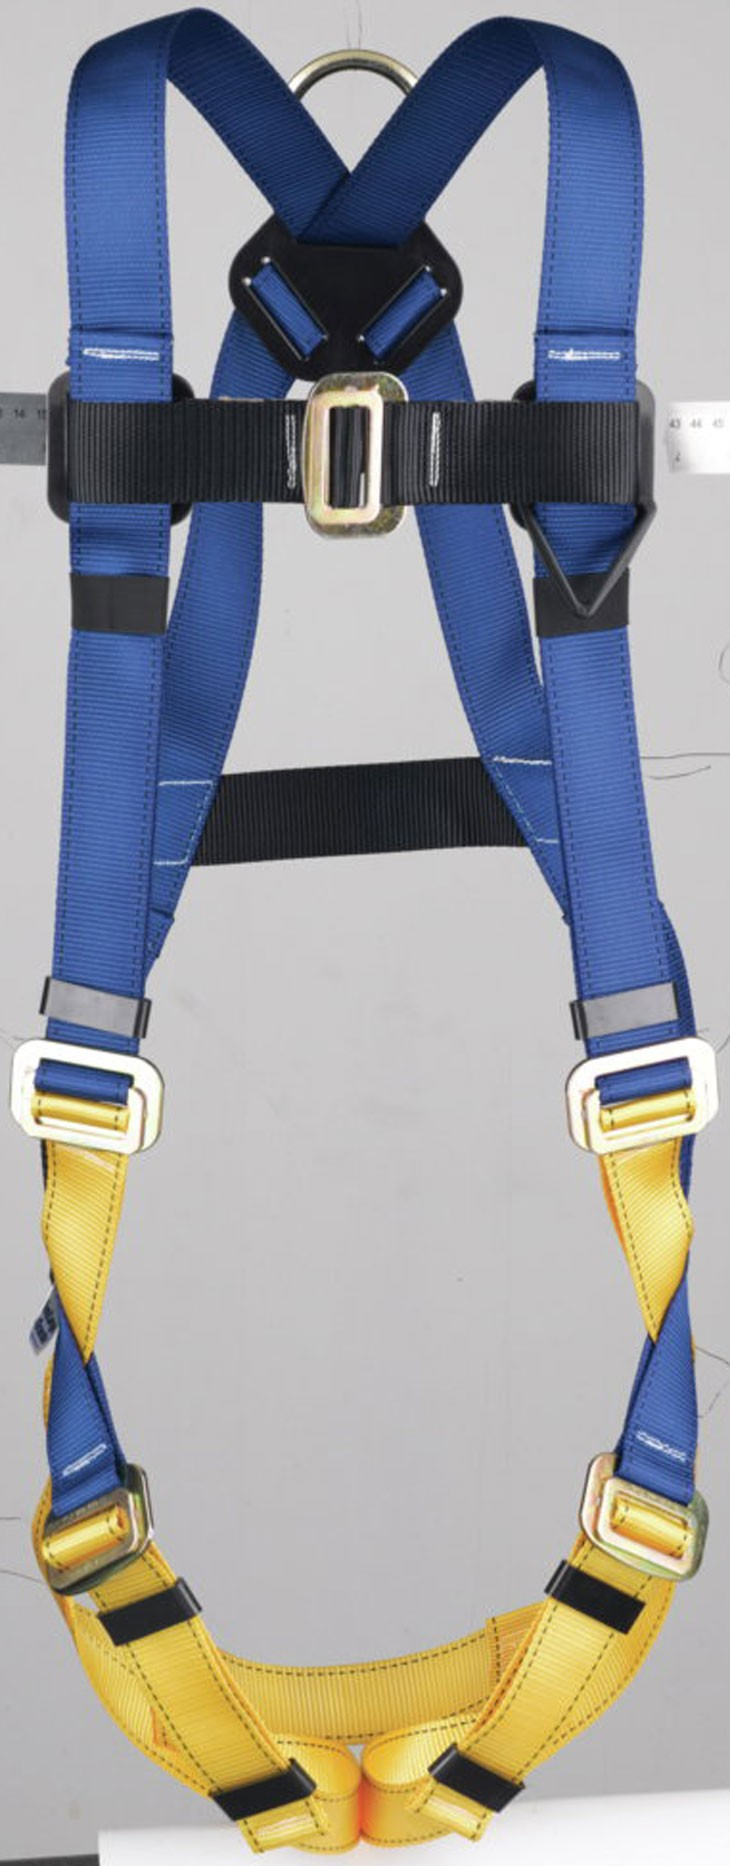 Harness, Fall Protection Kit